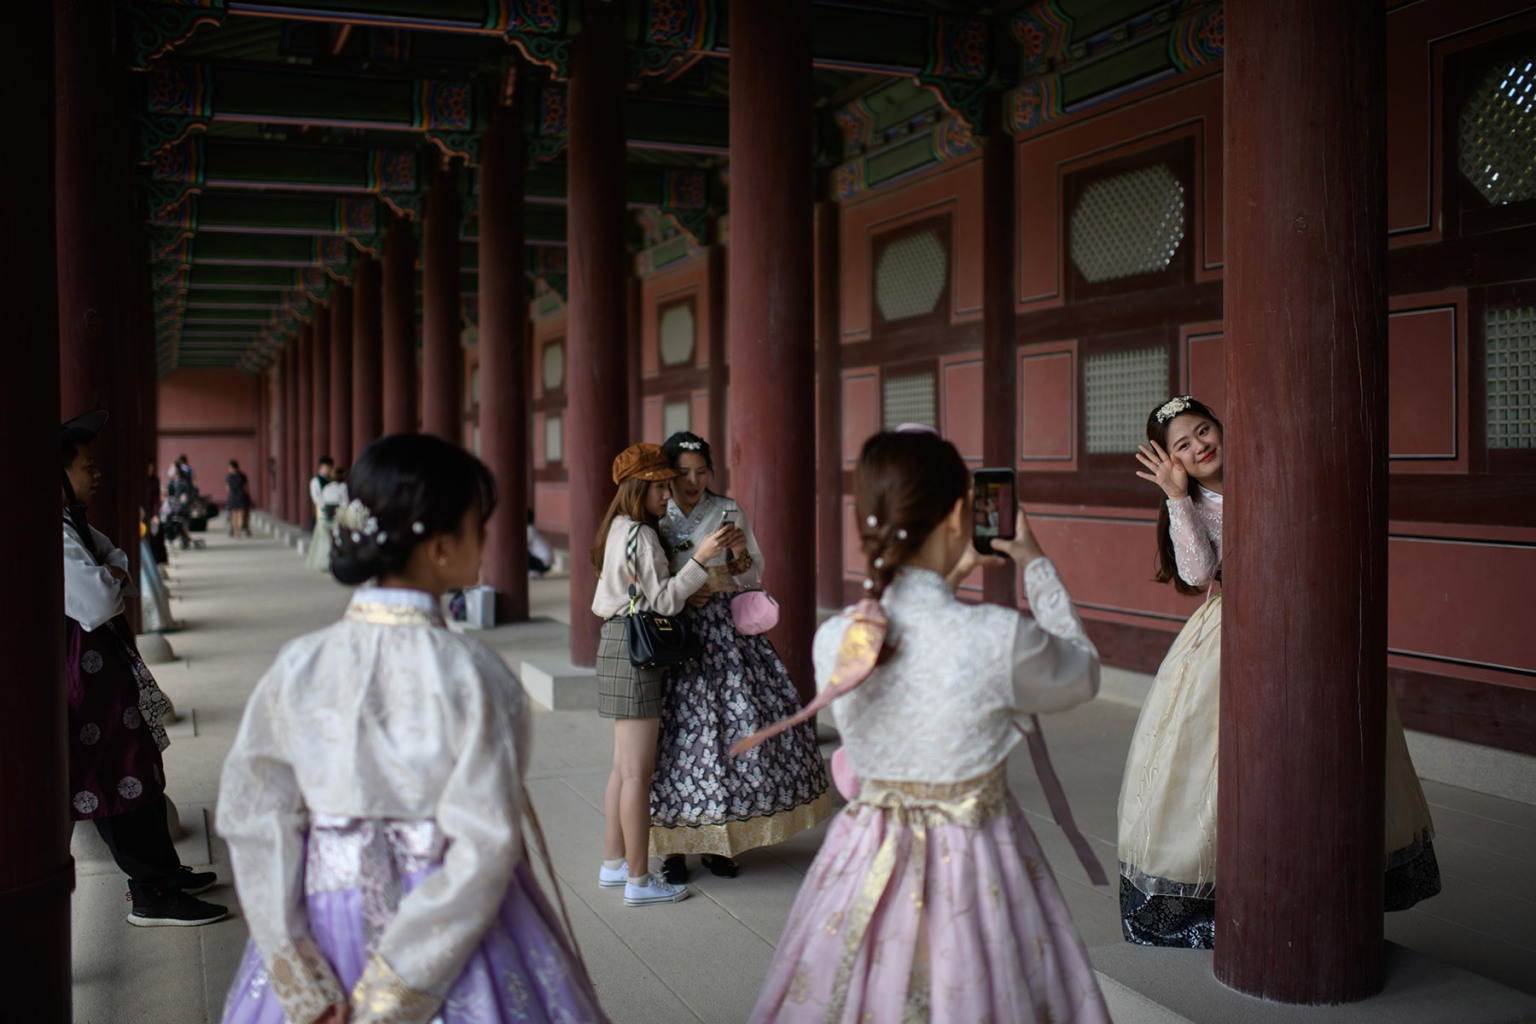 Visitors wearing traditional Korean hanbok dresses pose for photos at Gyeongbokgung palace in Seoul on Sept. 26. ED JONES/AFP/Getty Images